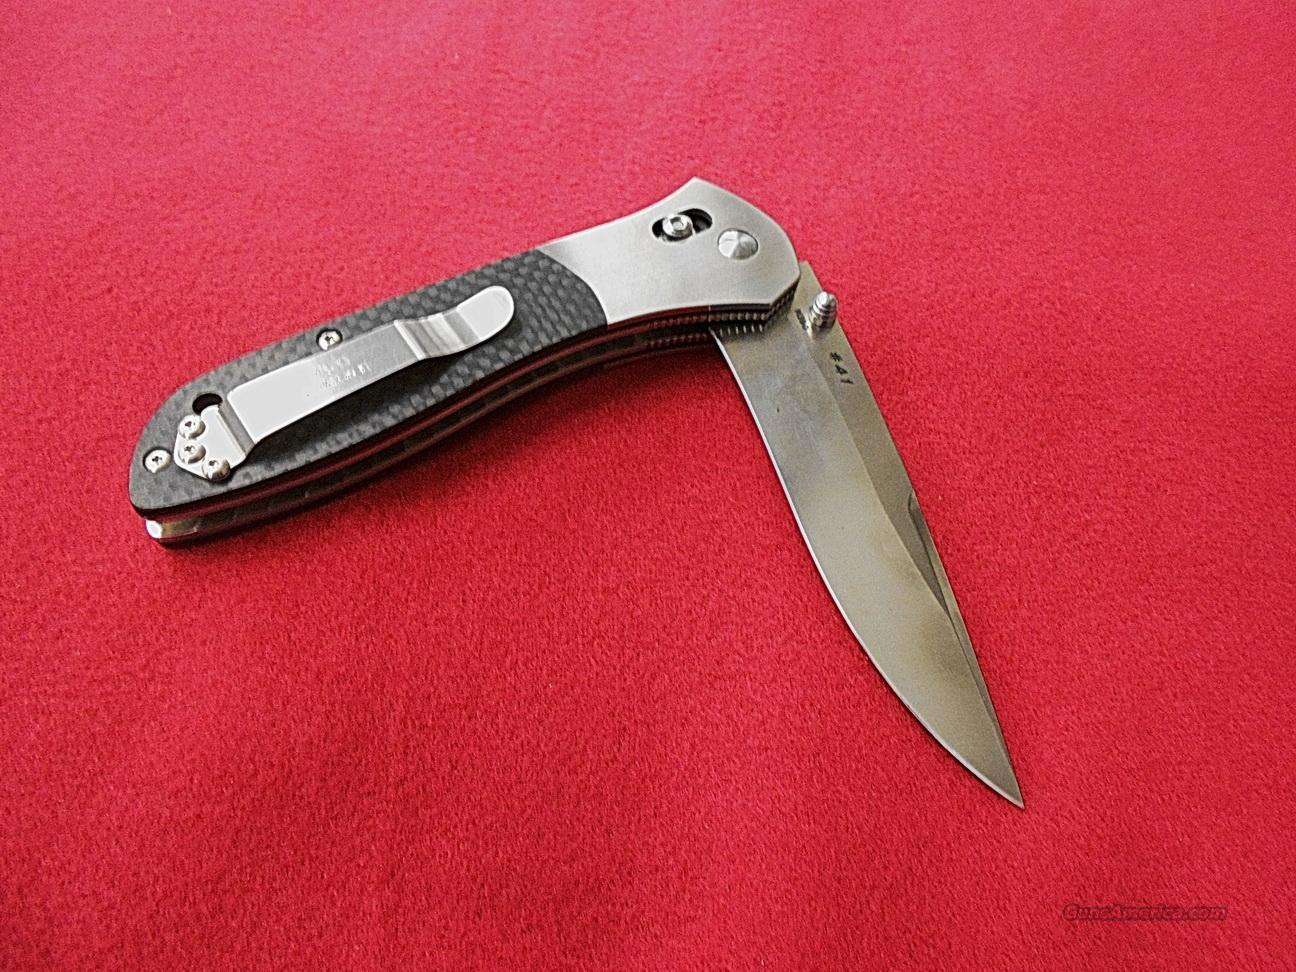 Benchmade 710 101 41 Of 200 For Sale